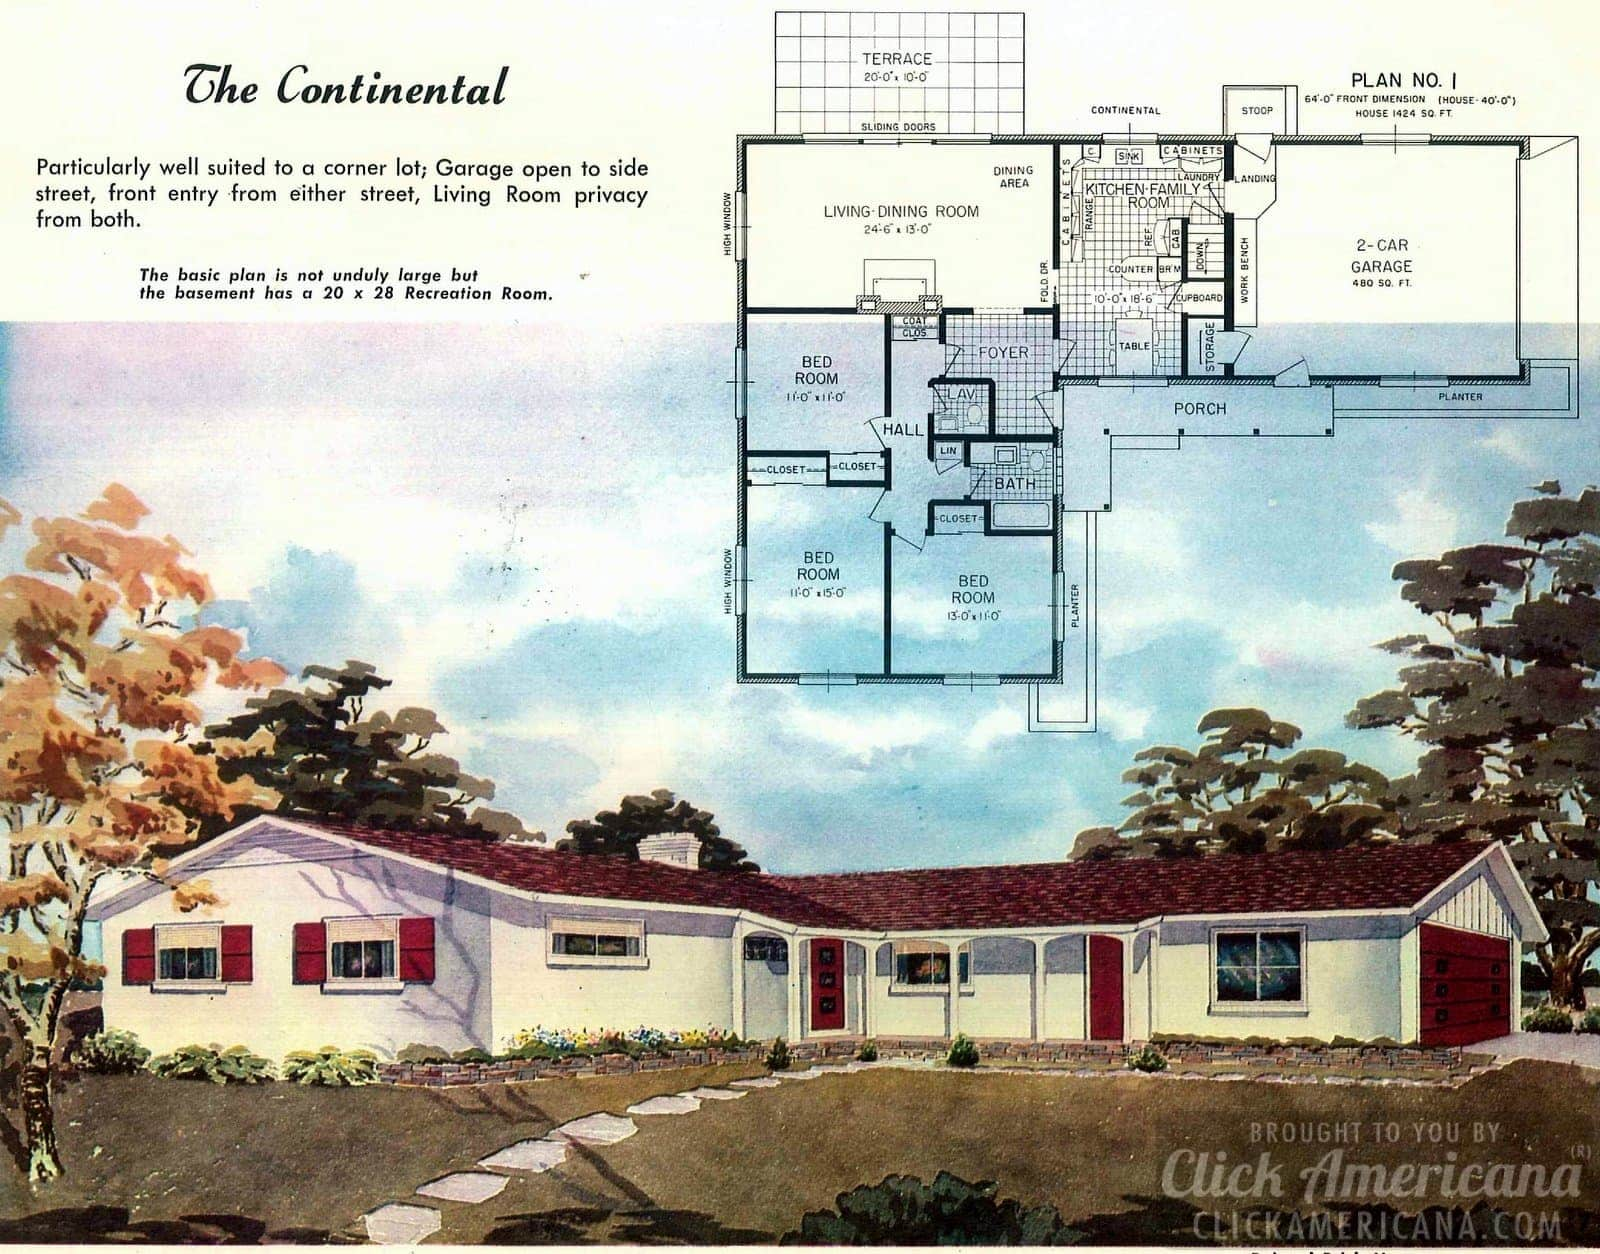 The Continental: House design plans from the '50s